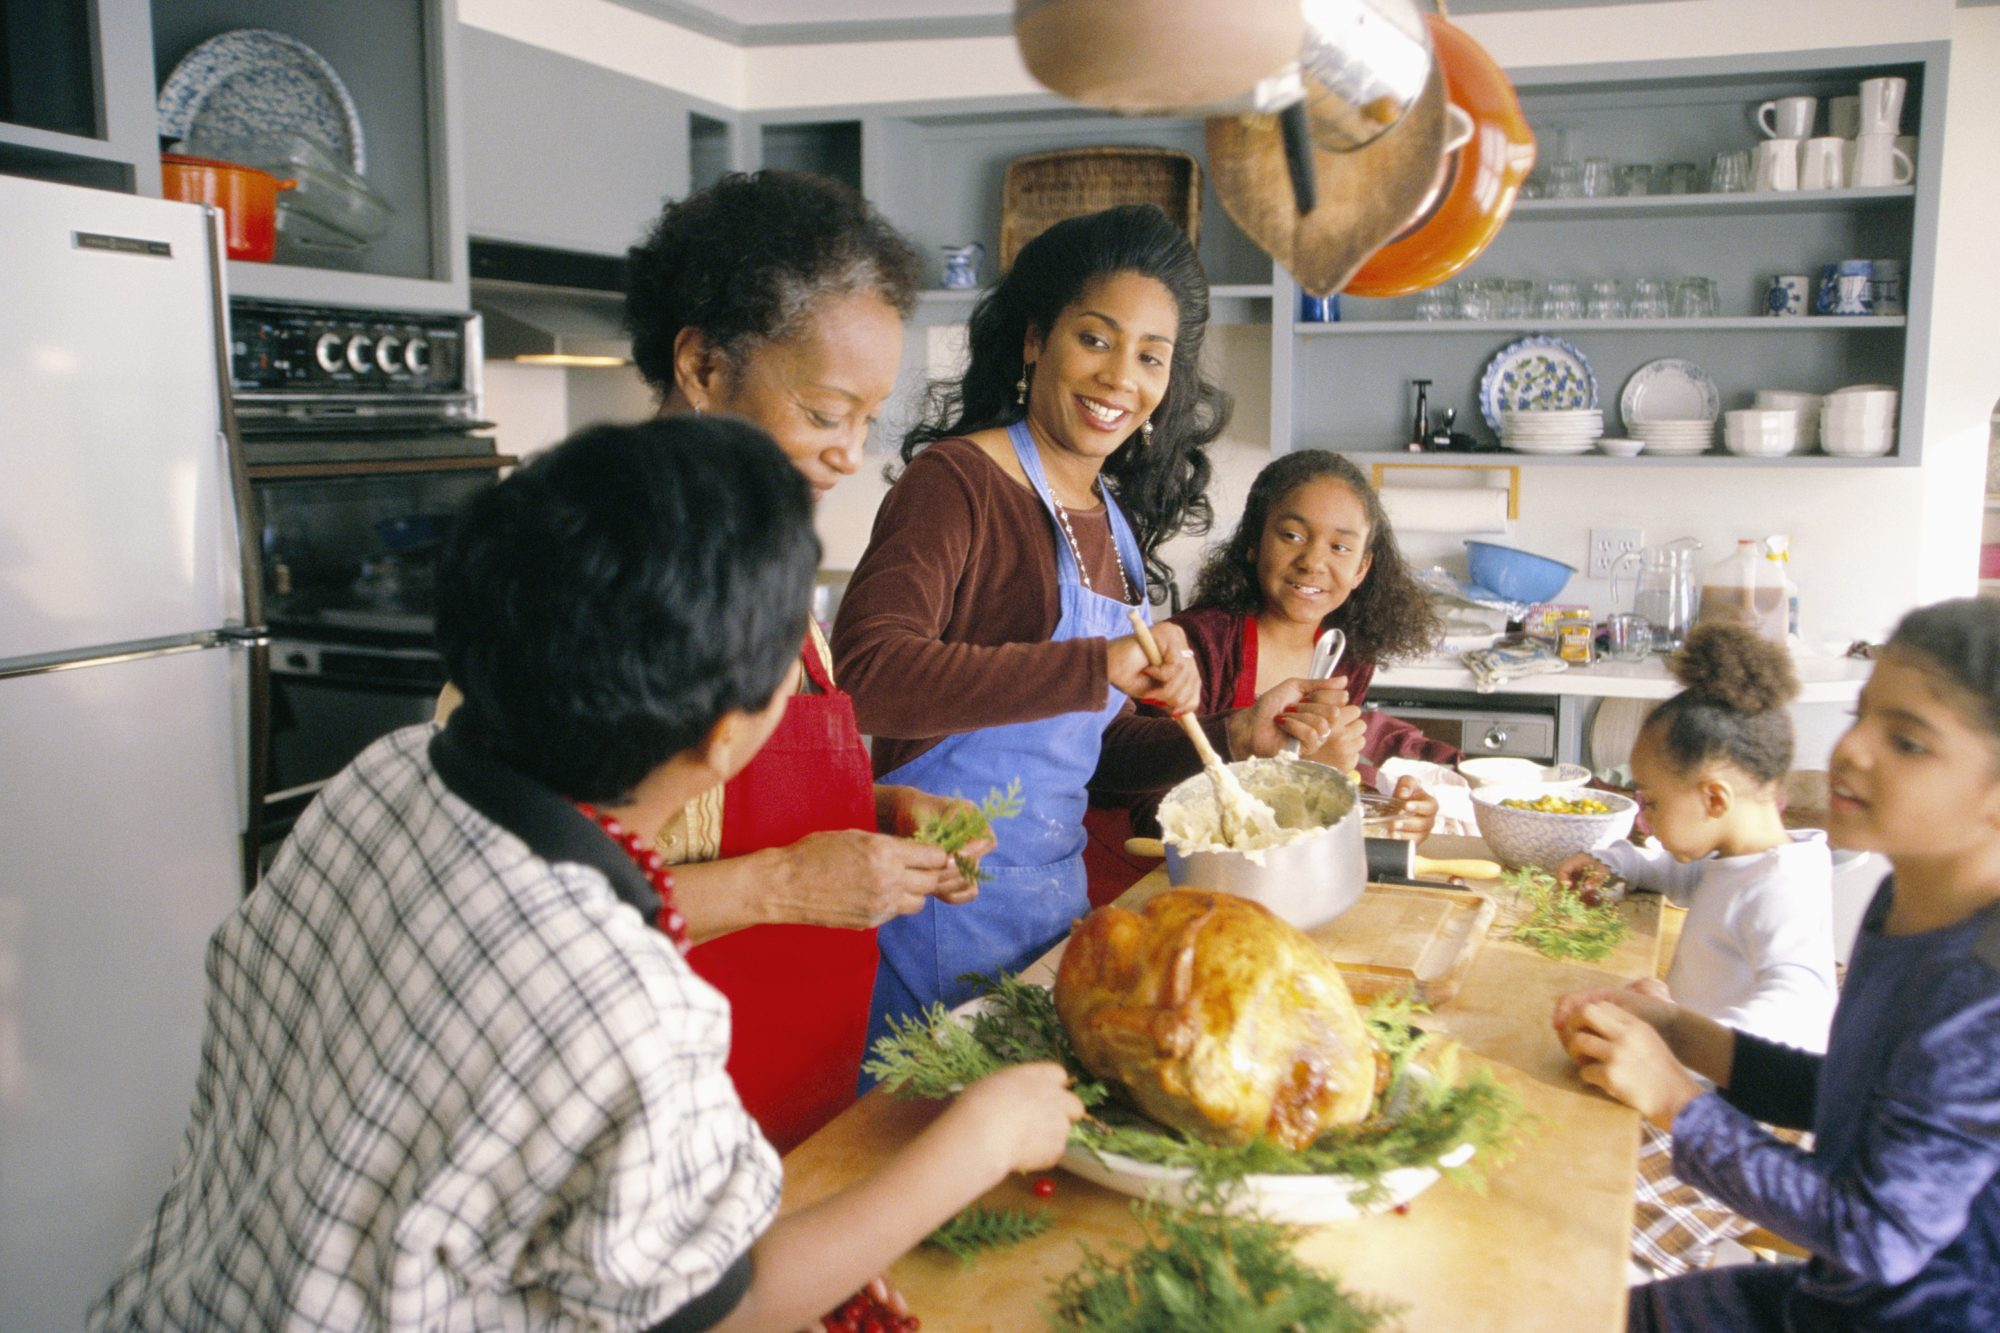 getty family preparing holiday dinner in the kitchen image